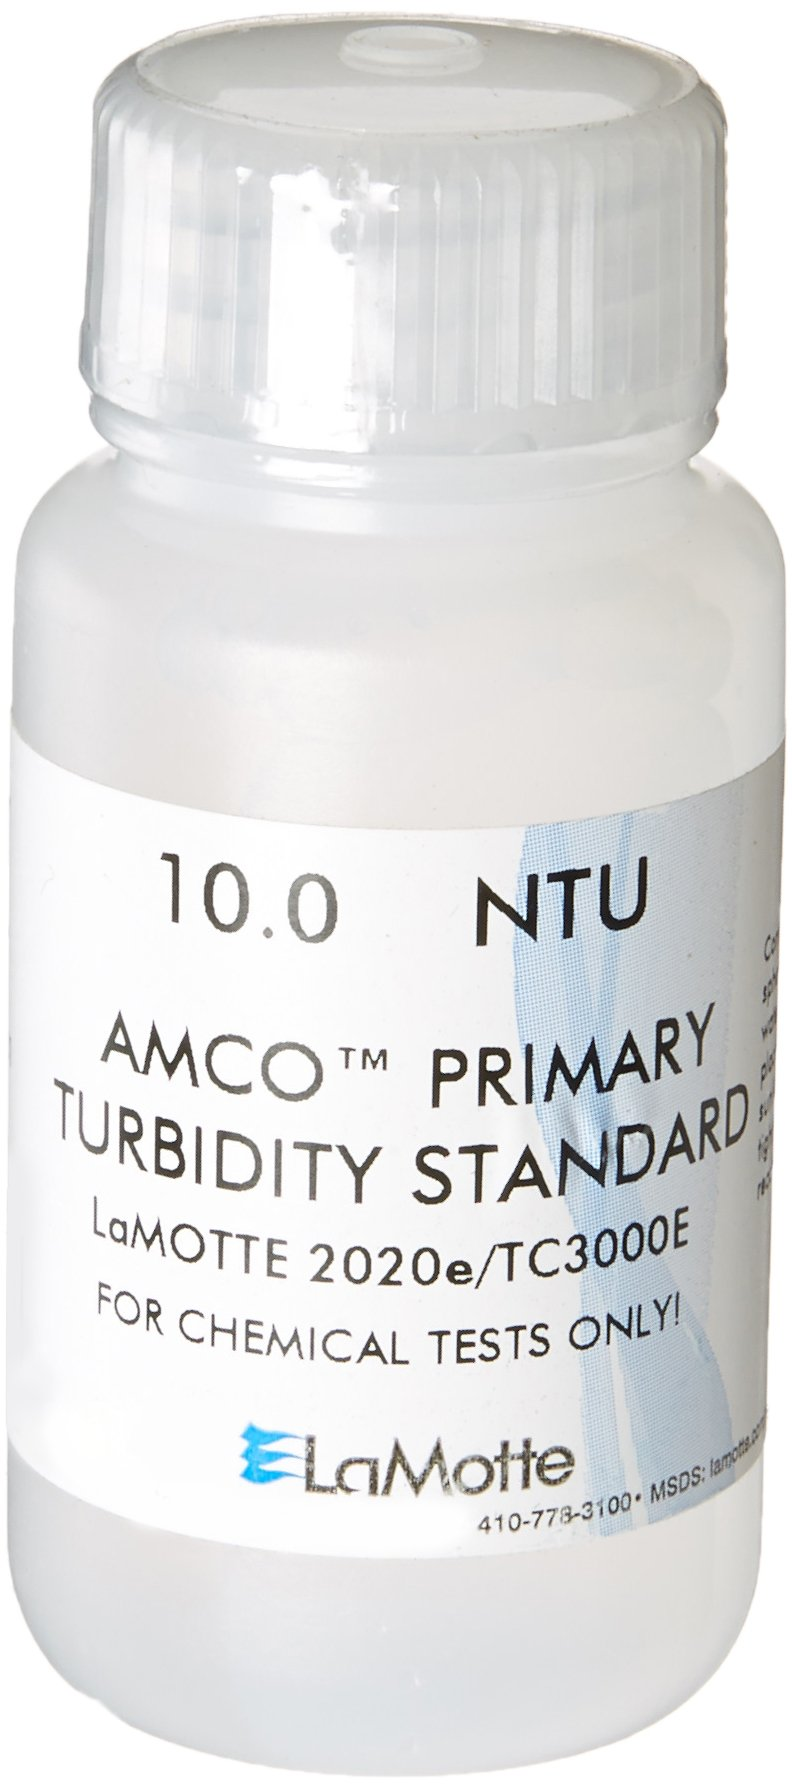 LaMotte 1485 Turbidity Standard (EPA) for 2020E/TC-3000E Turbidity Meter, 10 NTU, 60ml Volume